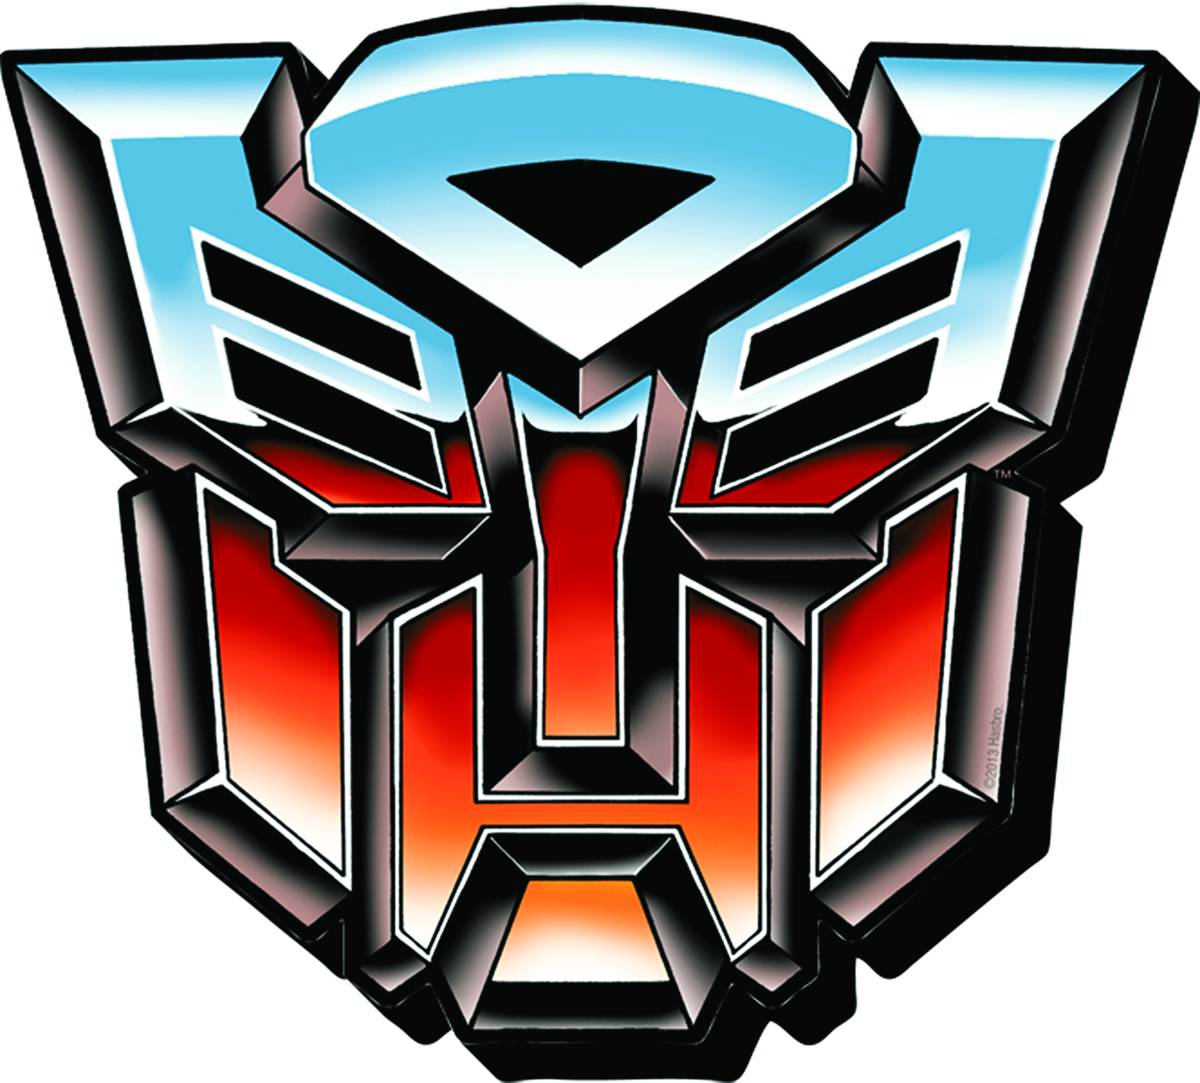 Who Was The First Transformer You Saw In The Very First Cartoon?